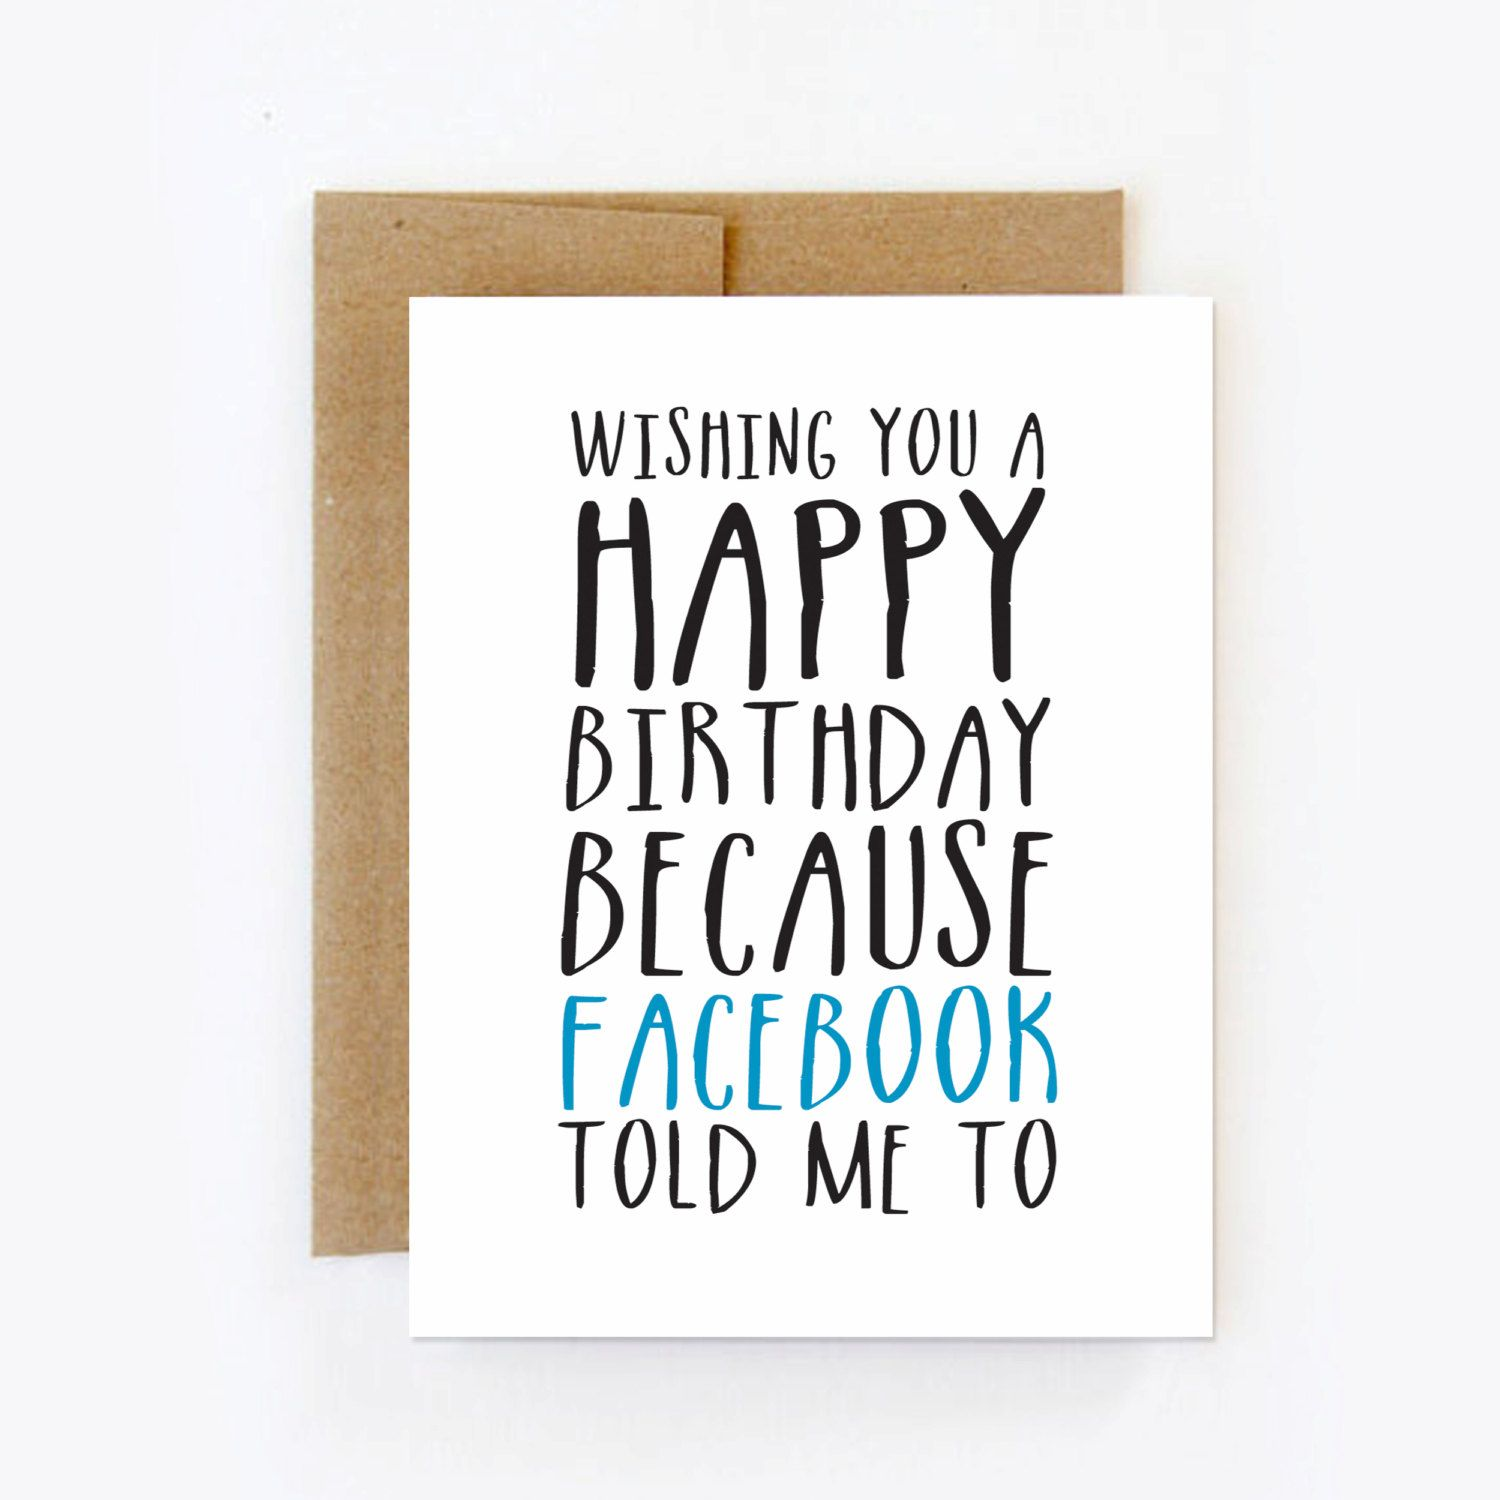 Funny Birthday Card Greeting Card About Facebook Sarcastic Wishes